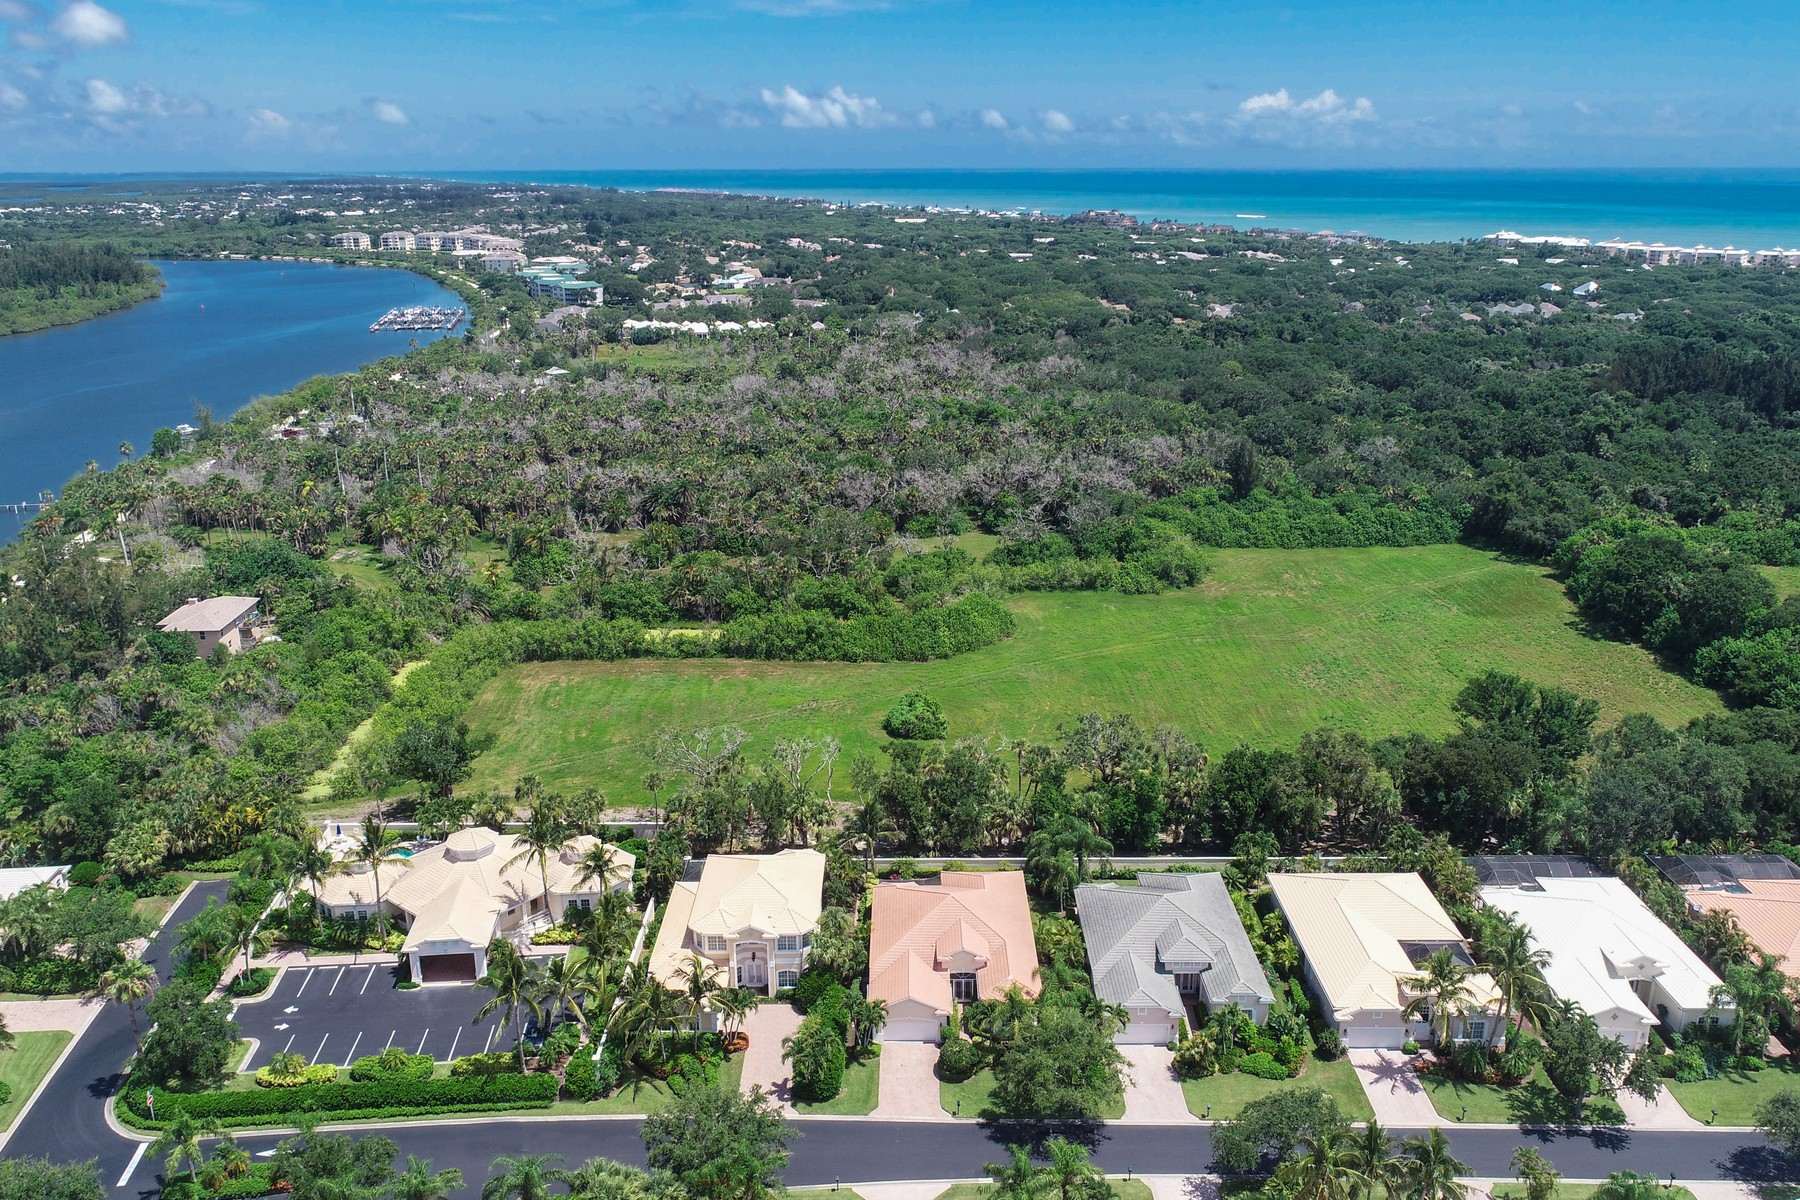 Property vì Bán tại Picture Perfect Home in Island Club 1233 W Island Club Square Vero Beach, Florida 32963 Hoa Kỳ